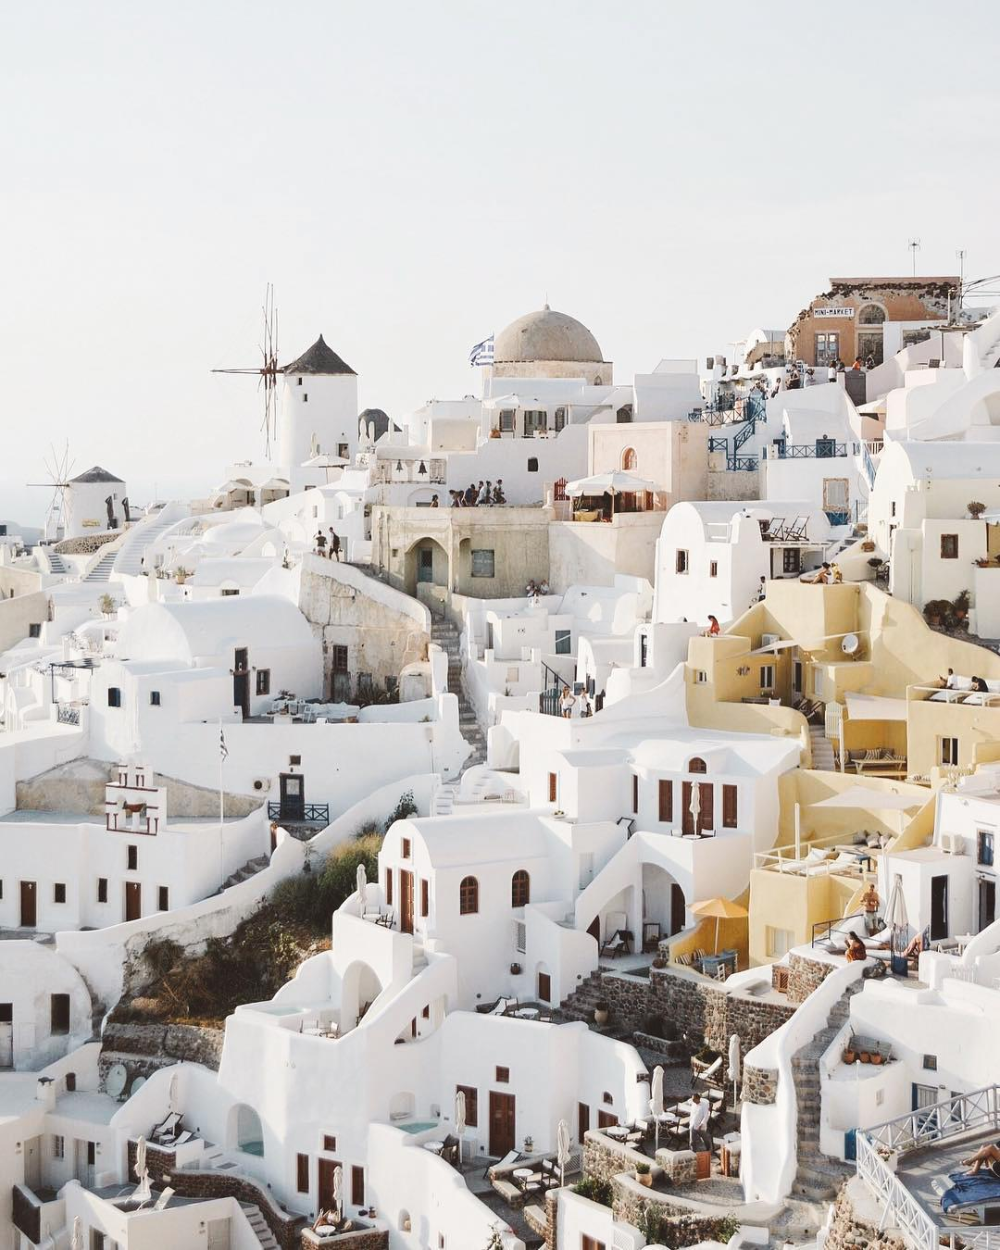 A Beginner's Guide to Greek Island Hopping With a Group #greekislands